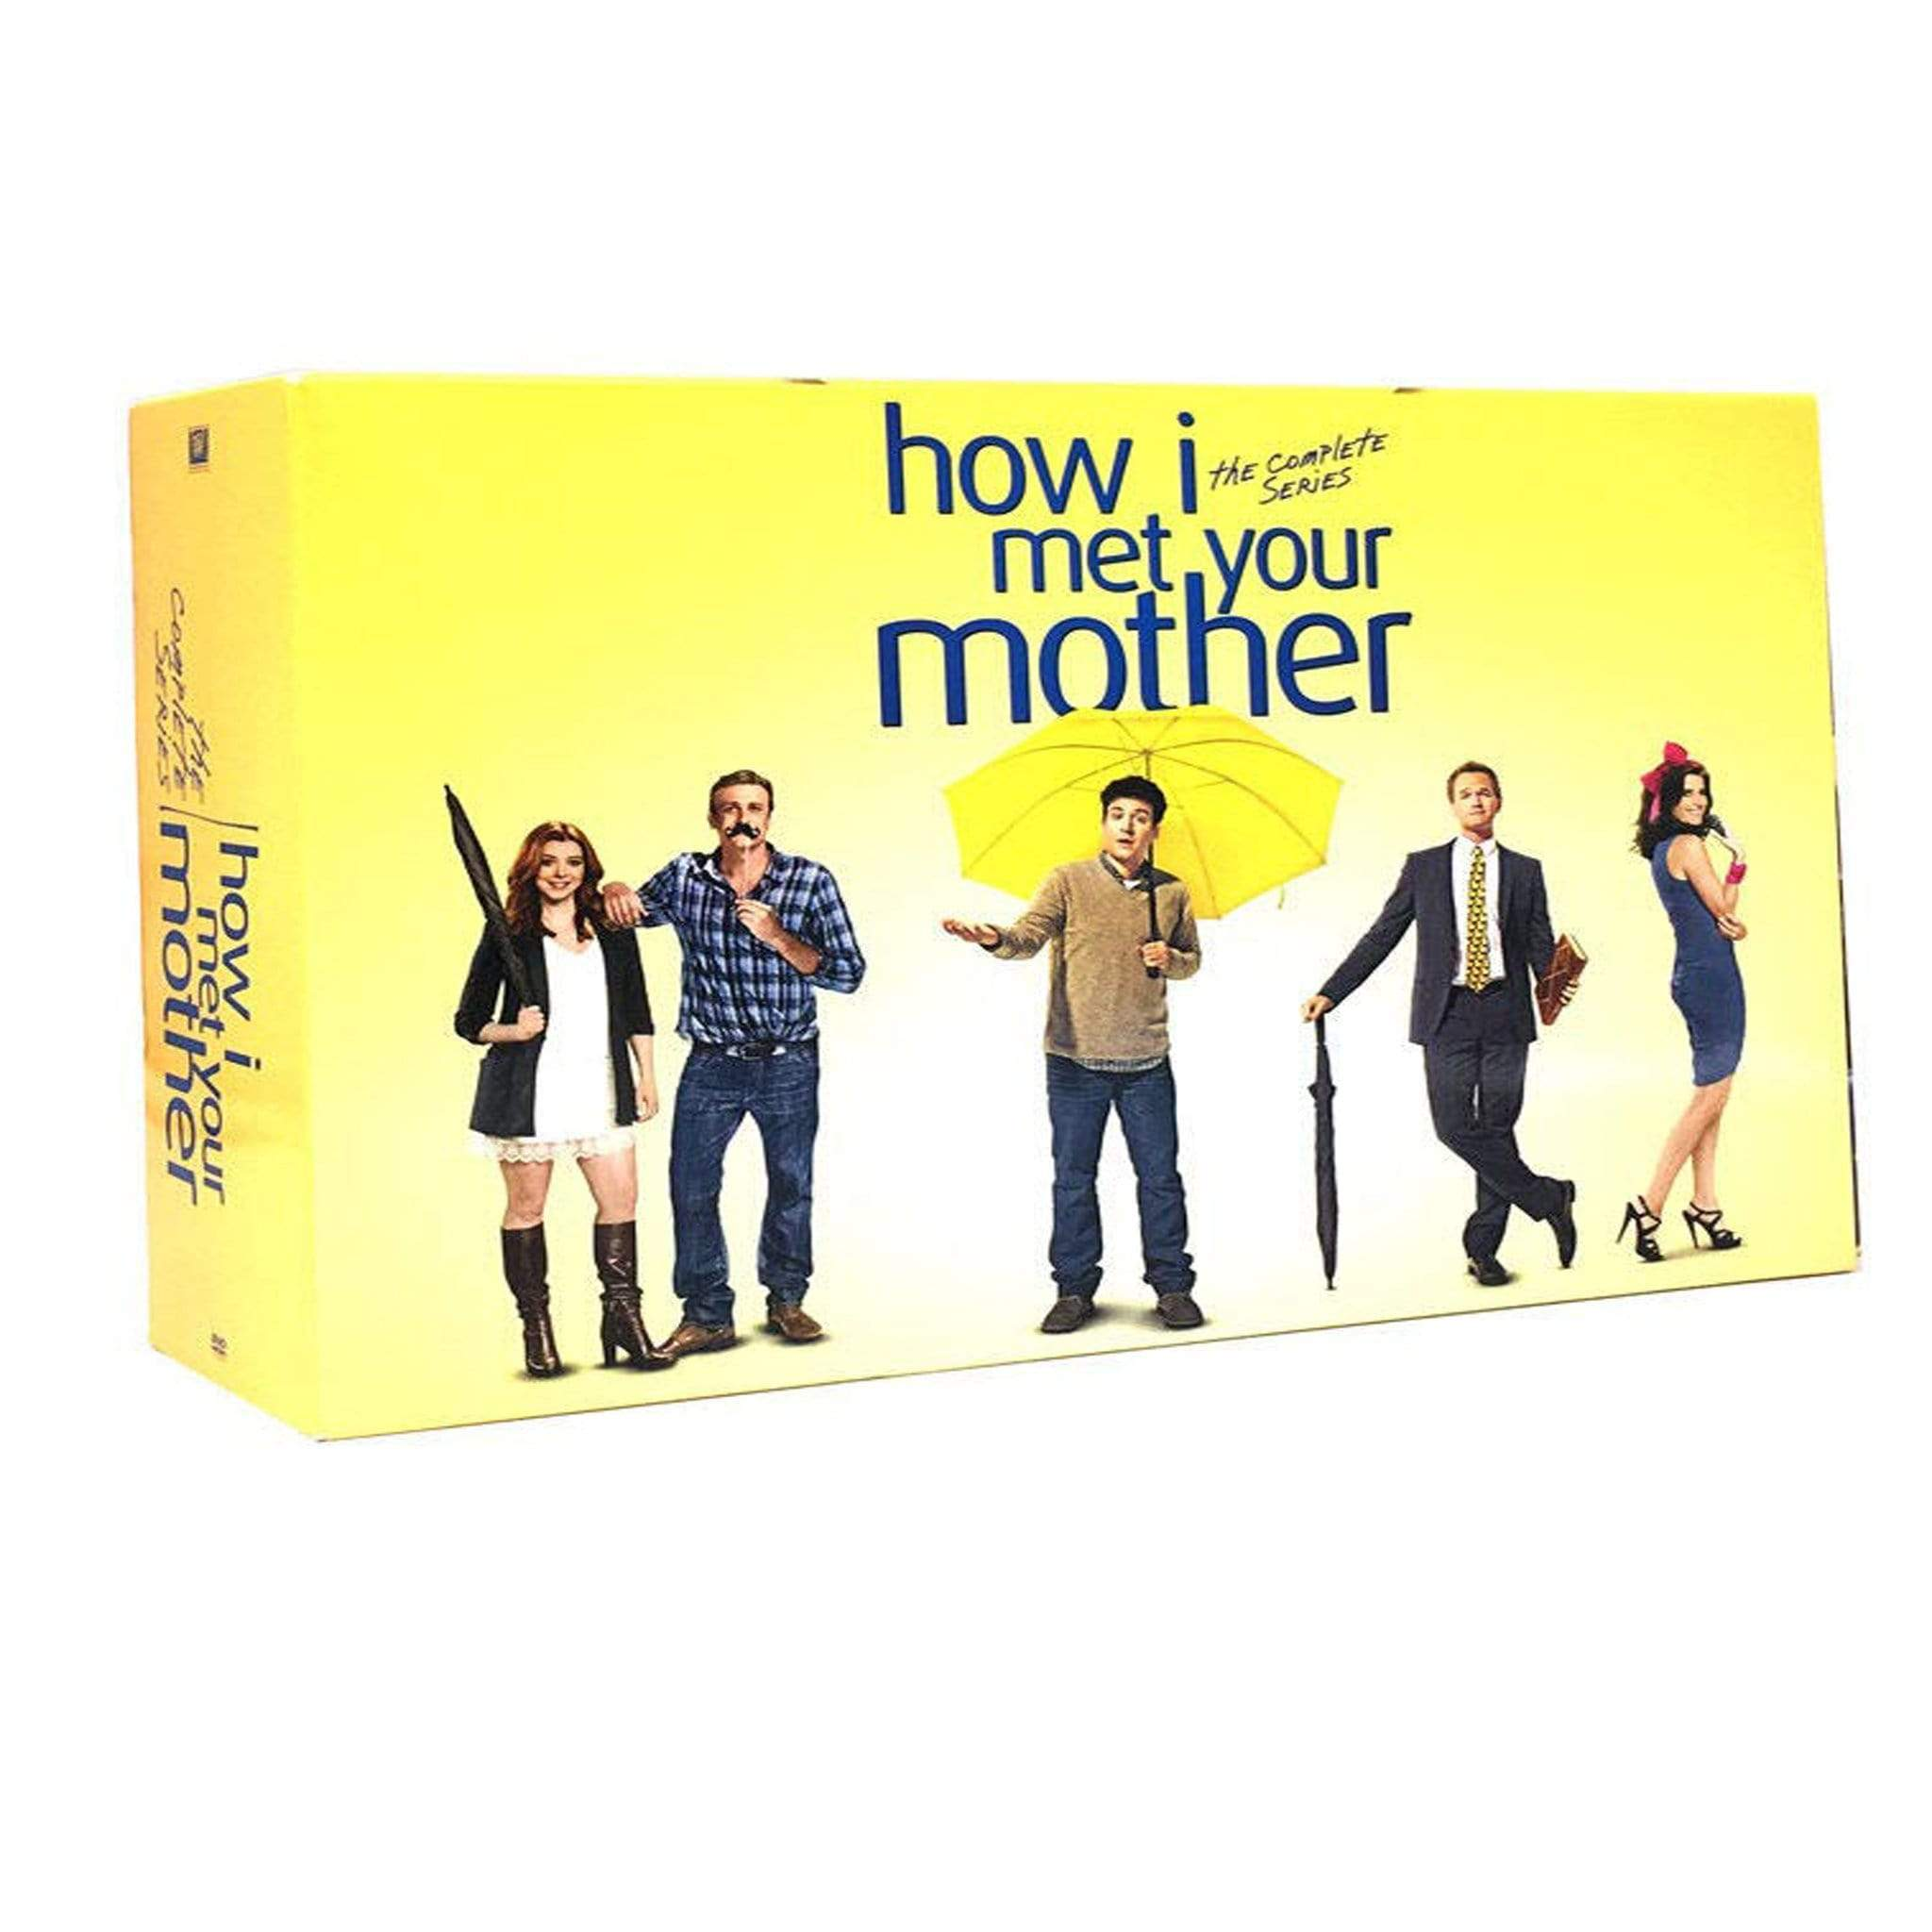 How I Met Your Mother DVD Complete Series Box Set 20th Century Fox DVDs & Blu-ray Discs > DVDs > Box Sets